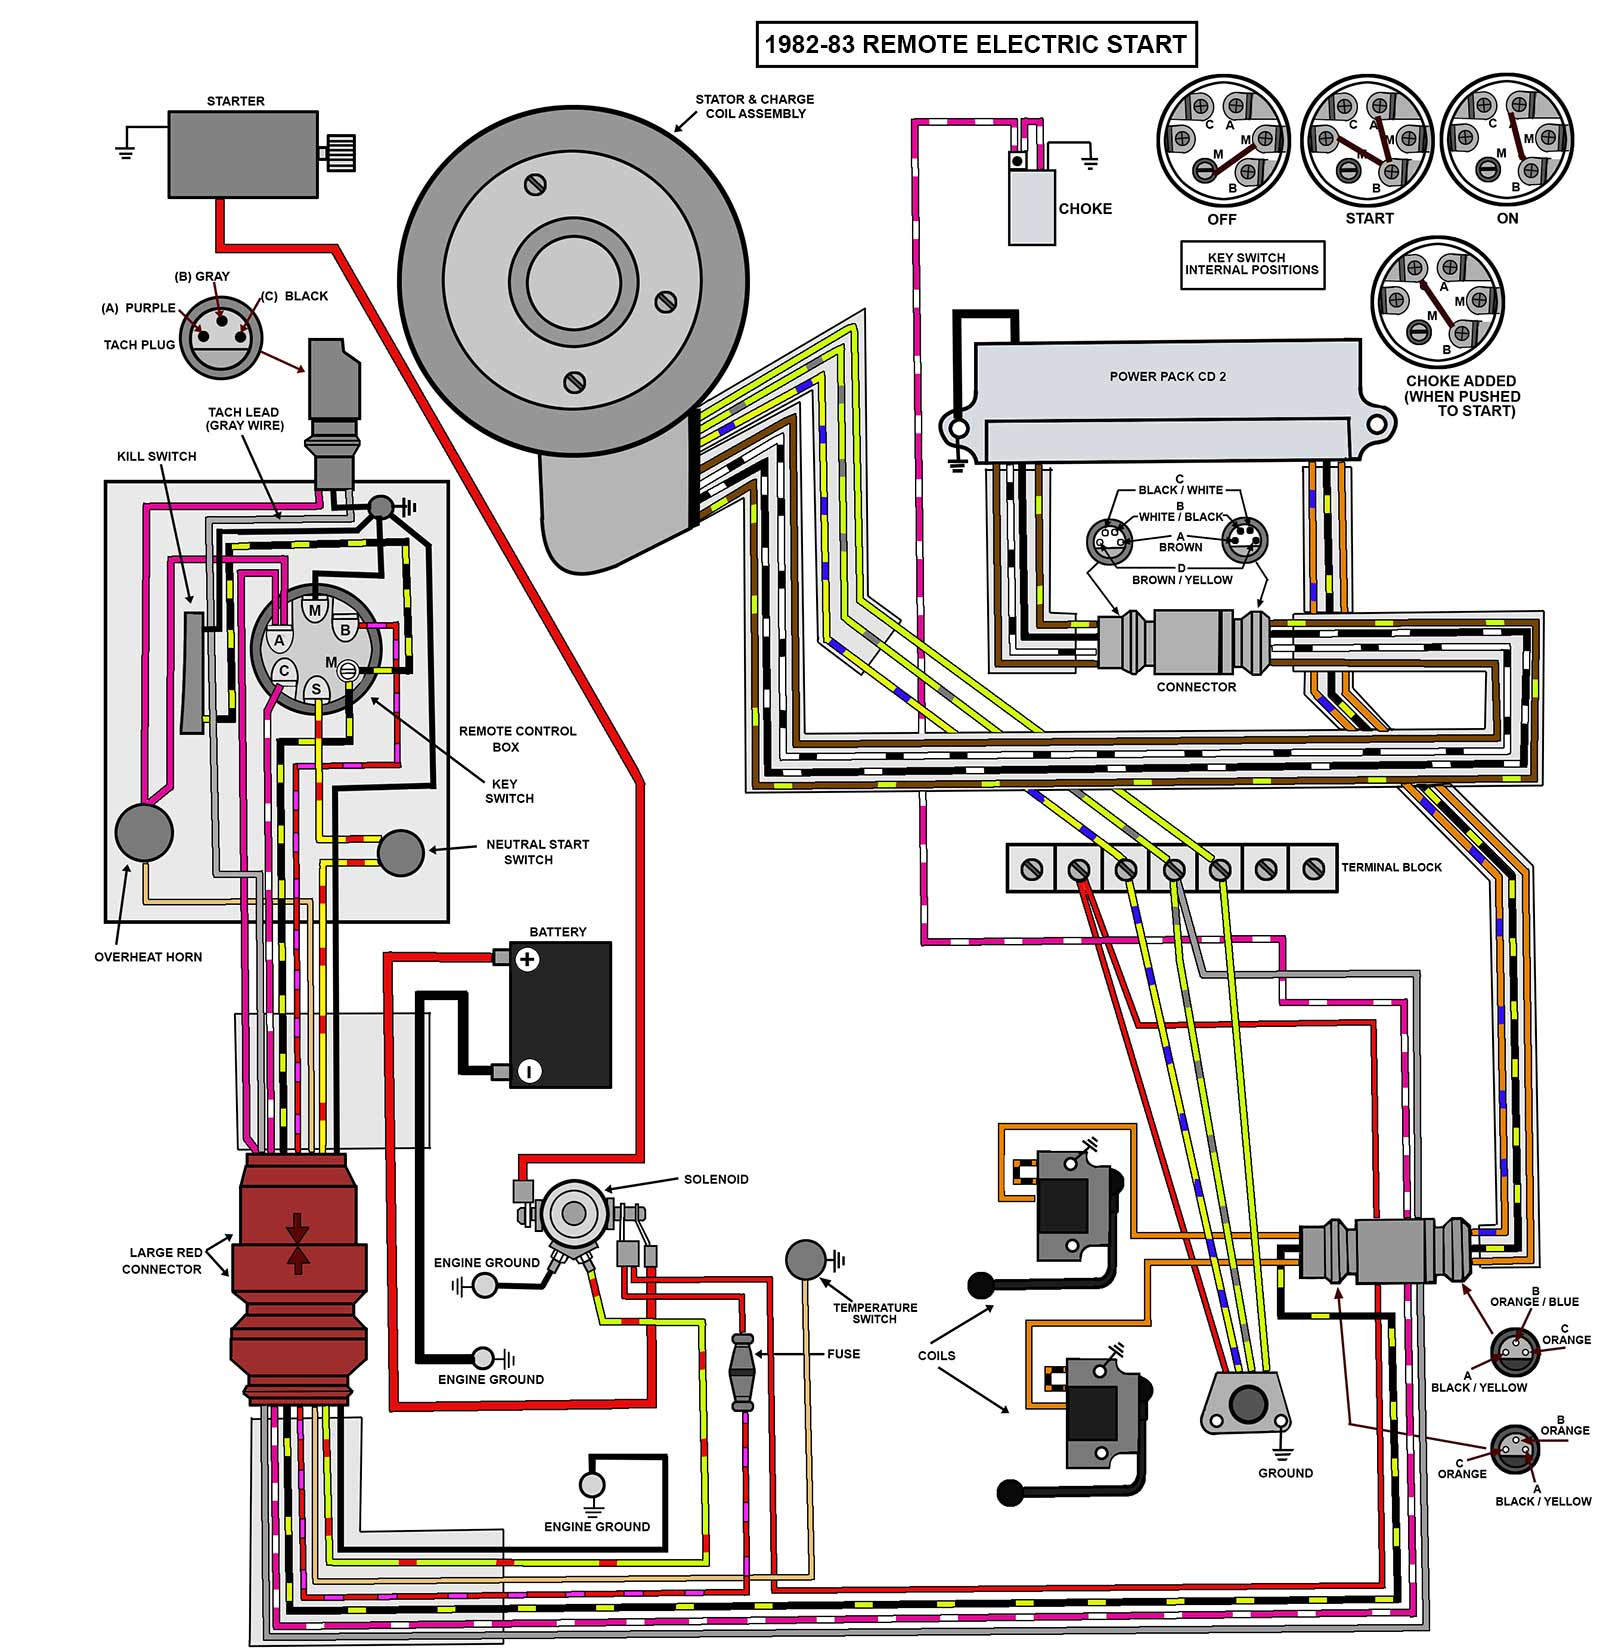 Force 50 Wiring Diagram Auto Electrical Fenwal Ignition Module For 35 725206 117 Mastertech Marine